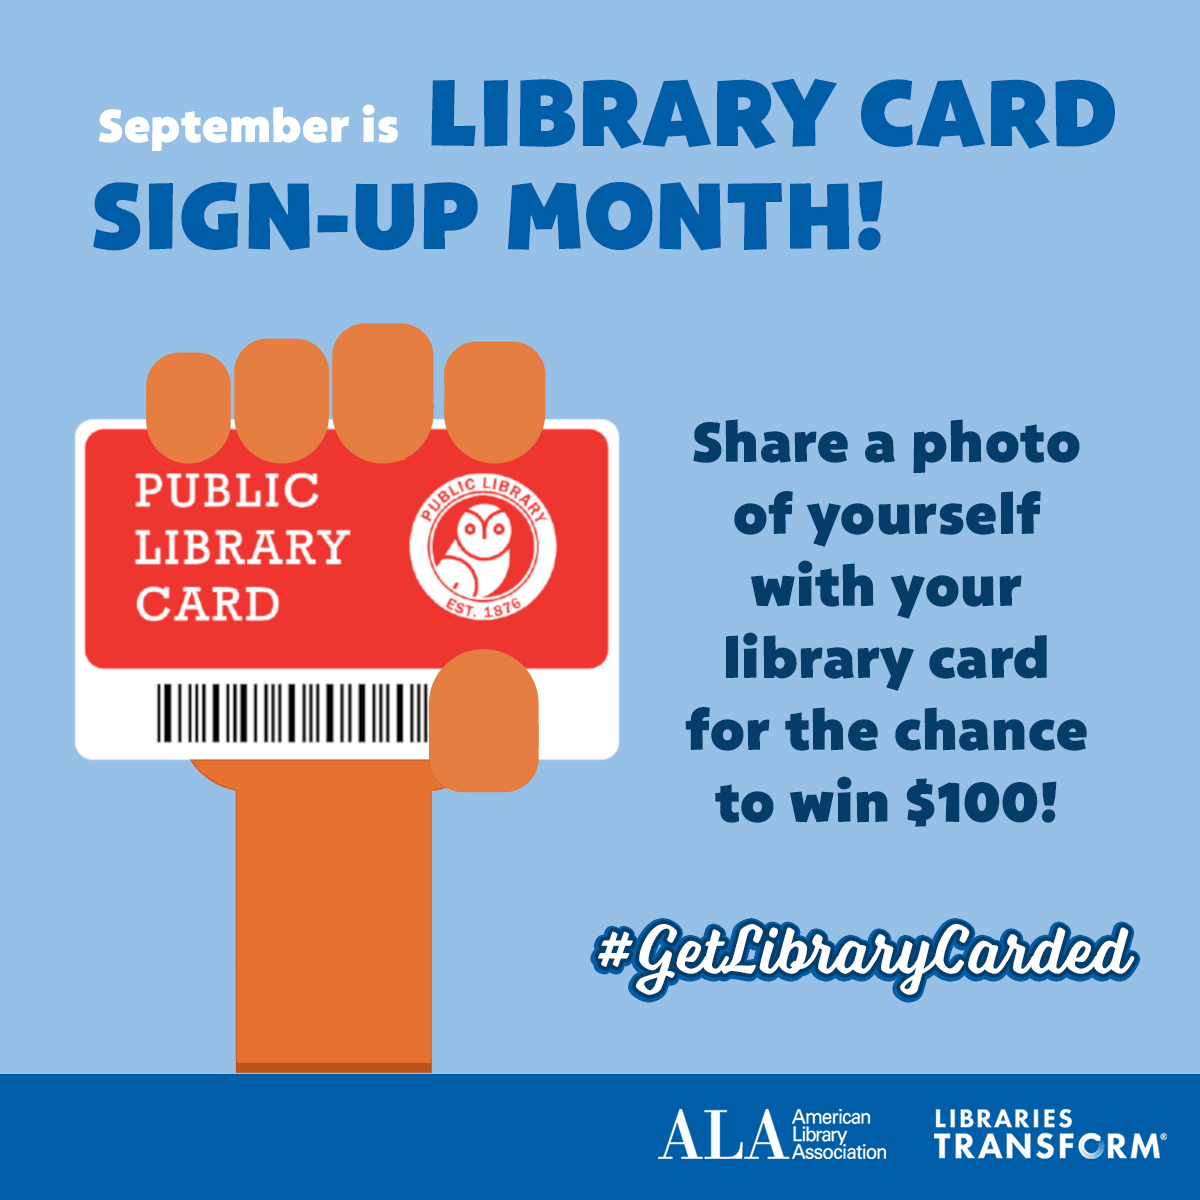 get library carded promotion image